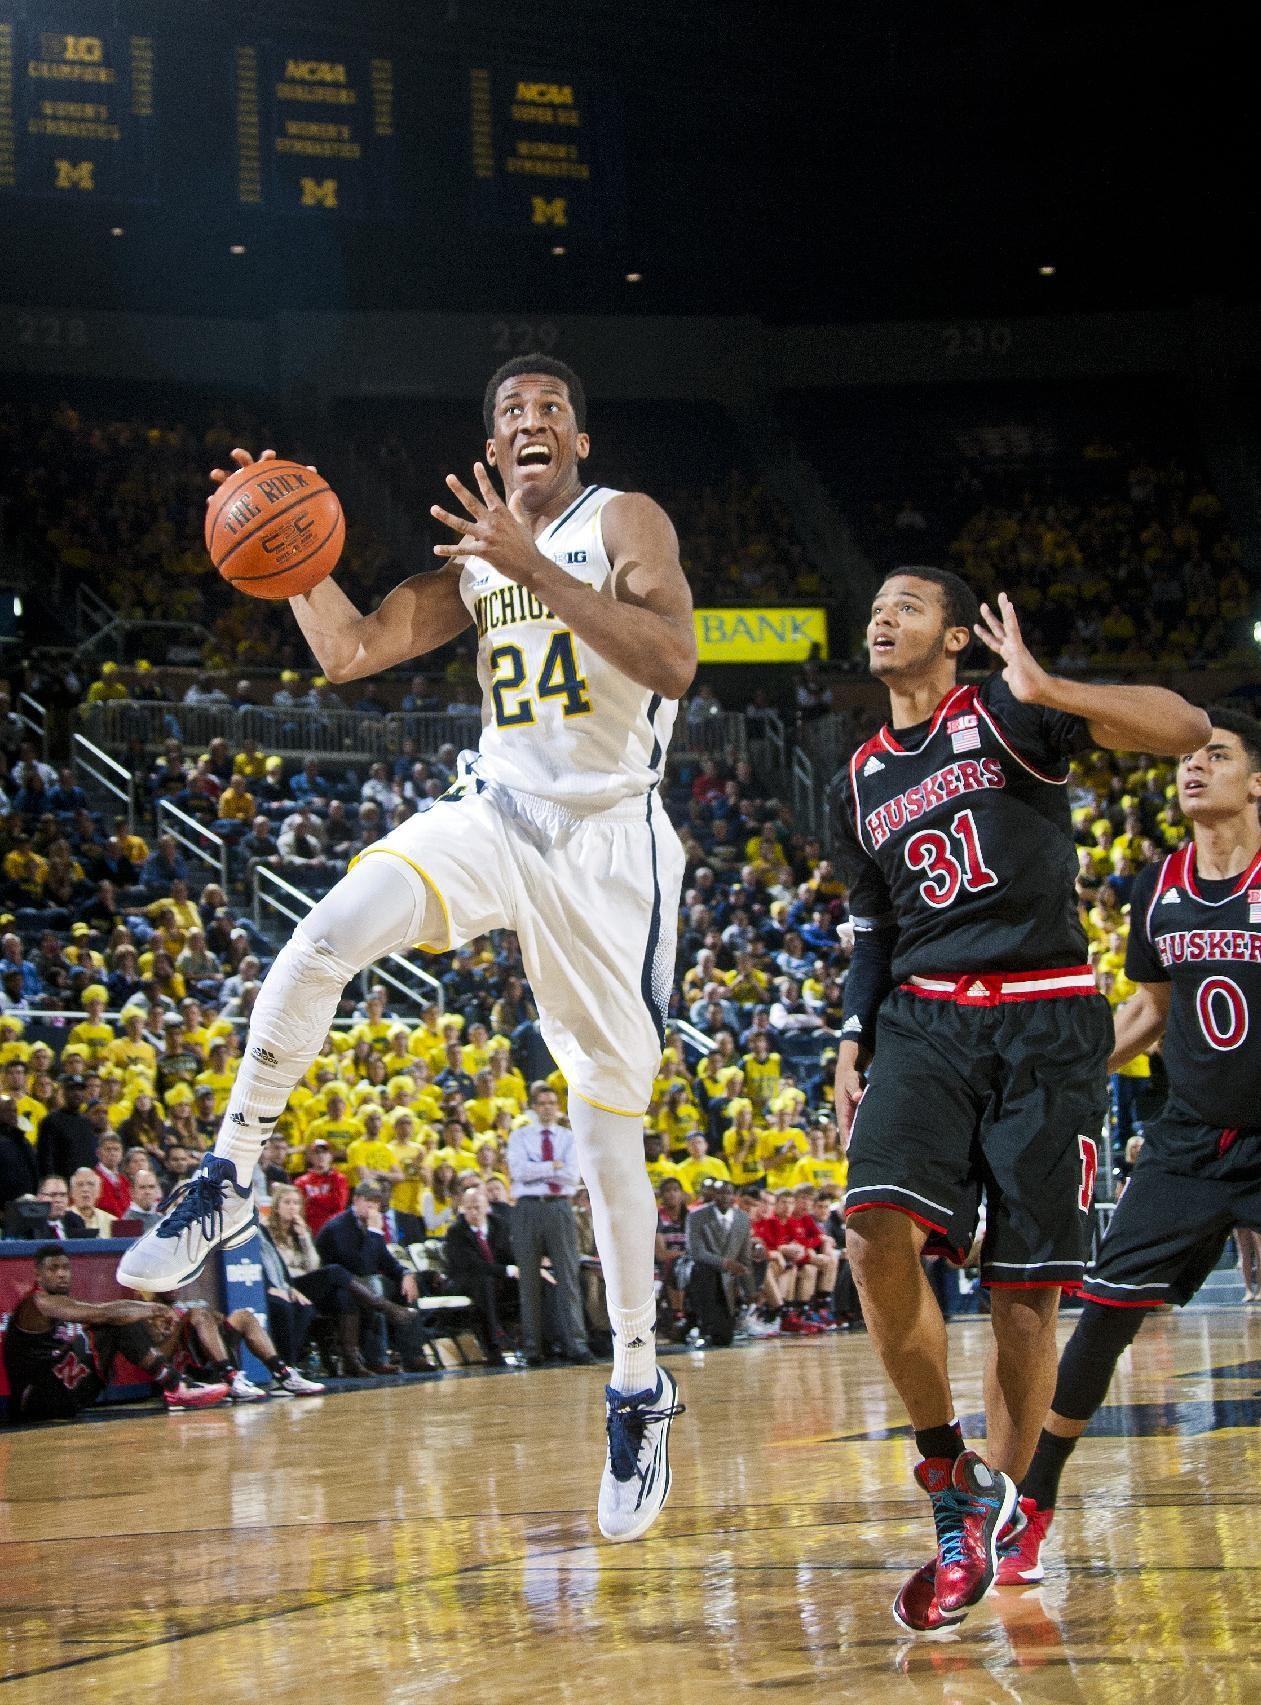 Michigan beats Nebraska 58-44